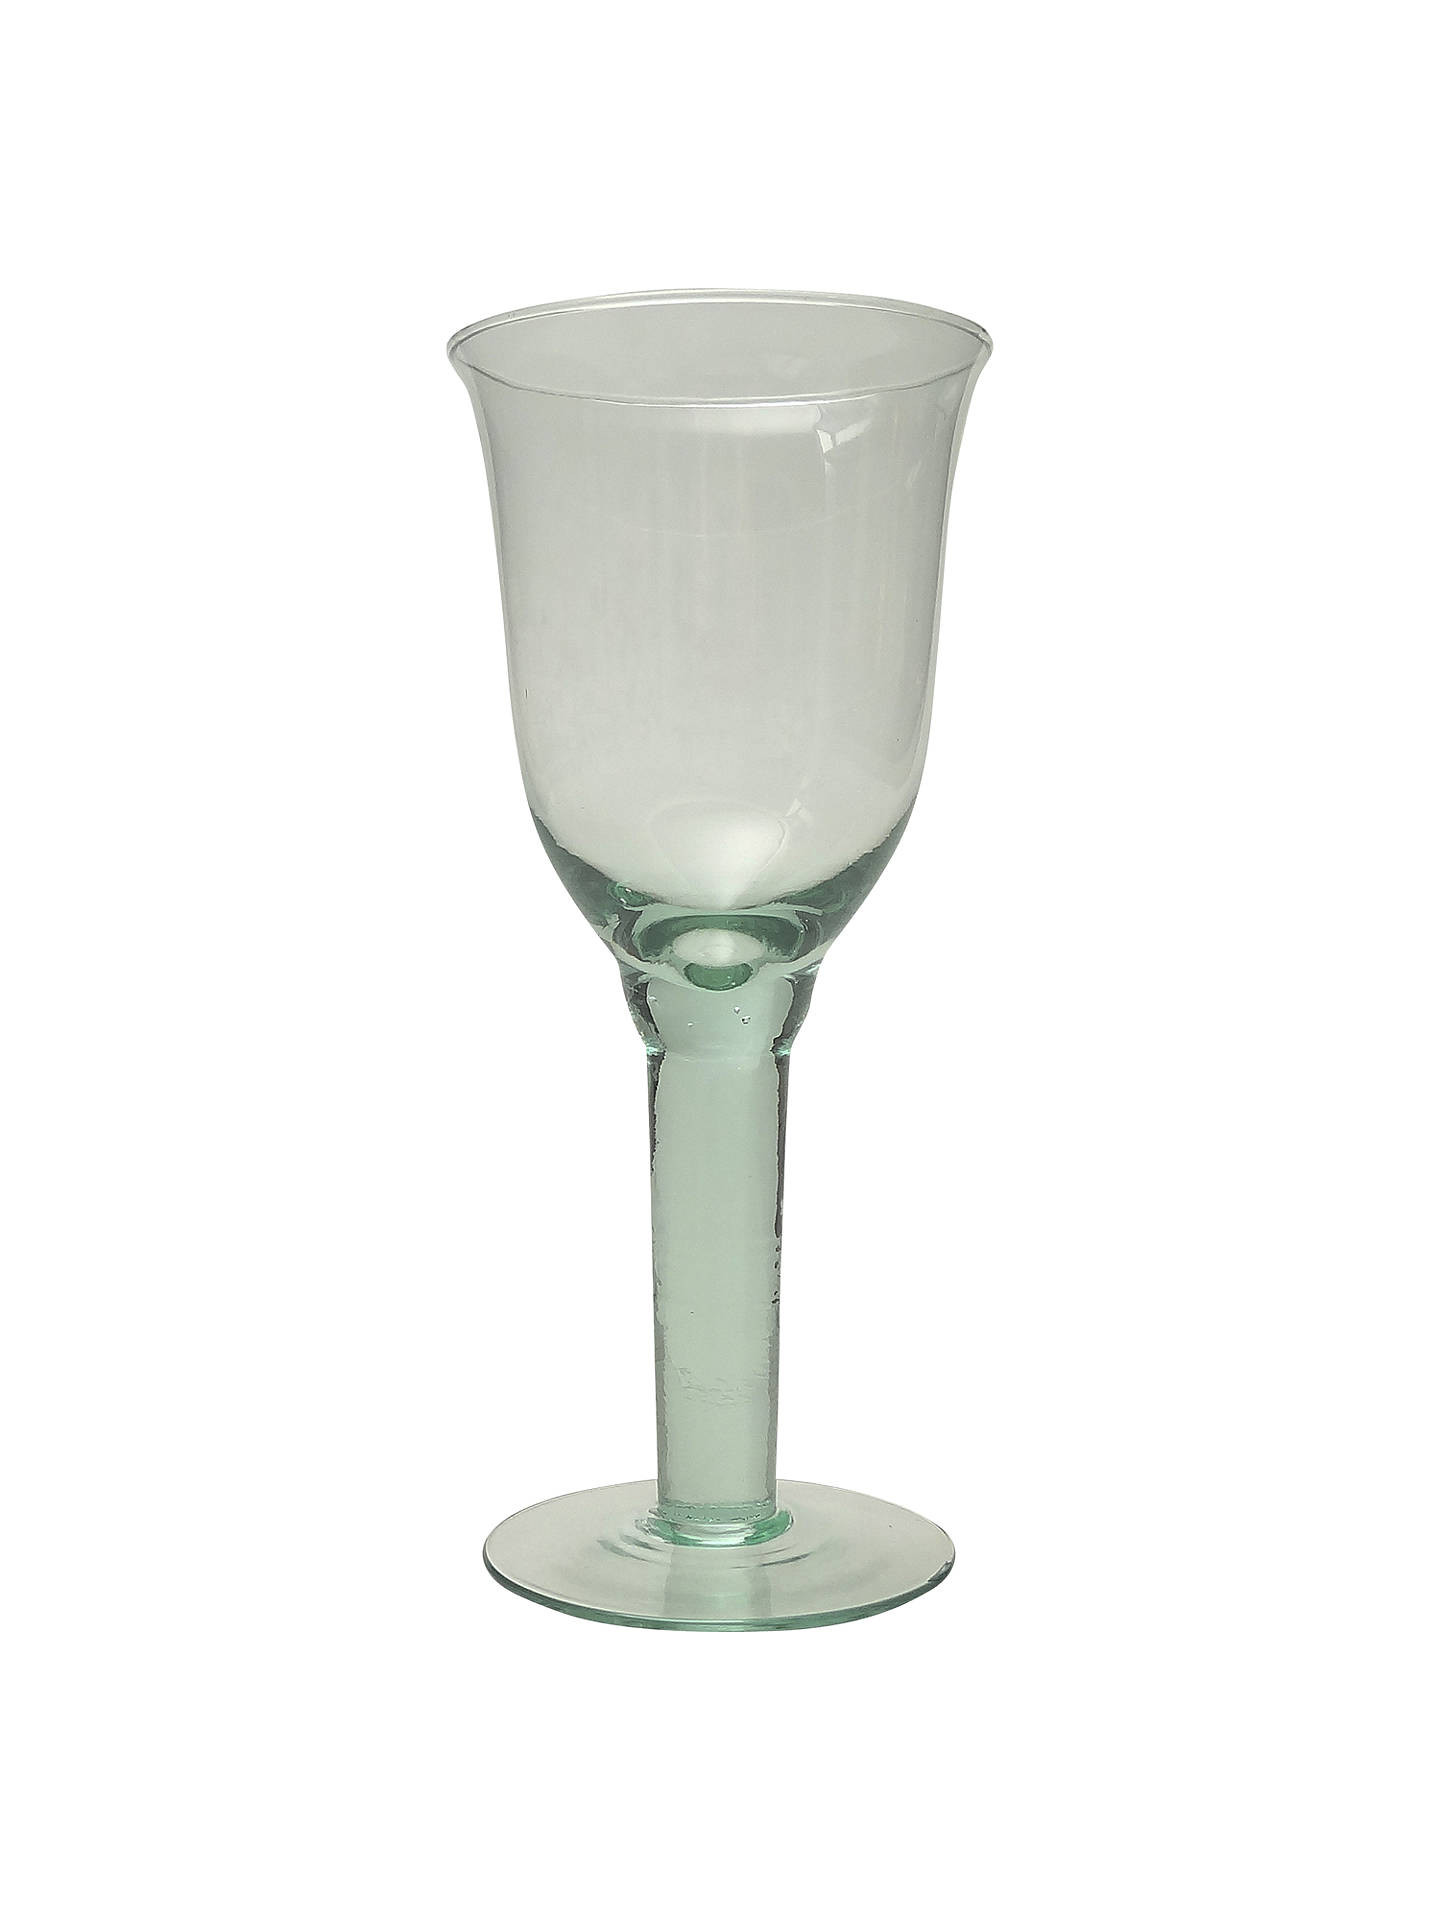 vidrios san miguel vases of vidrios san miguel recycled glass tulip wine glass clear large with regard to buyvidrios san miguel recycled glass tulip wine glass clear large 360ml online at johnlewis